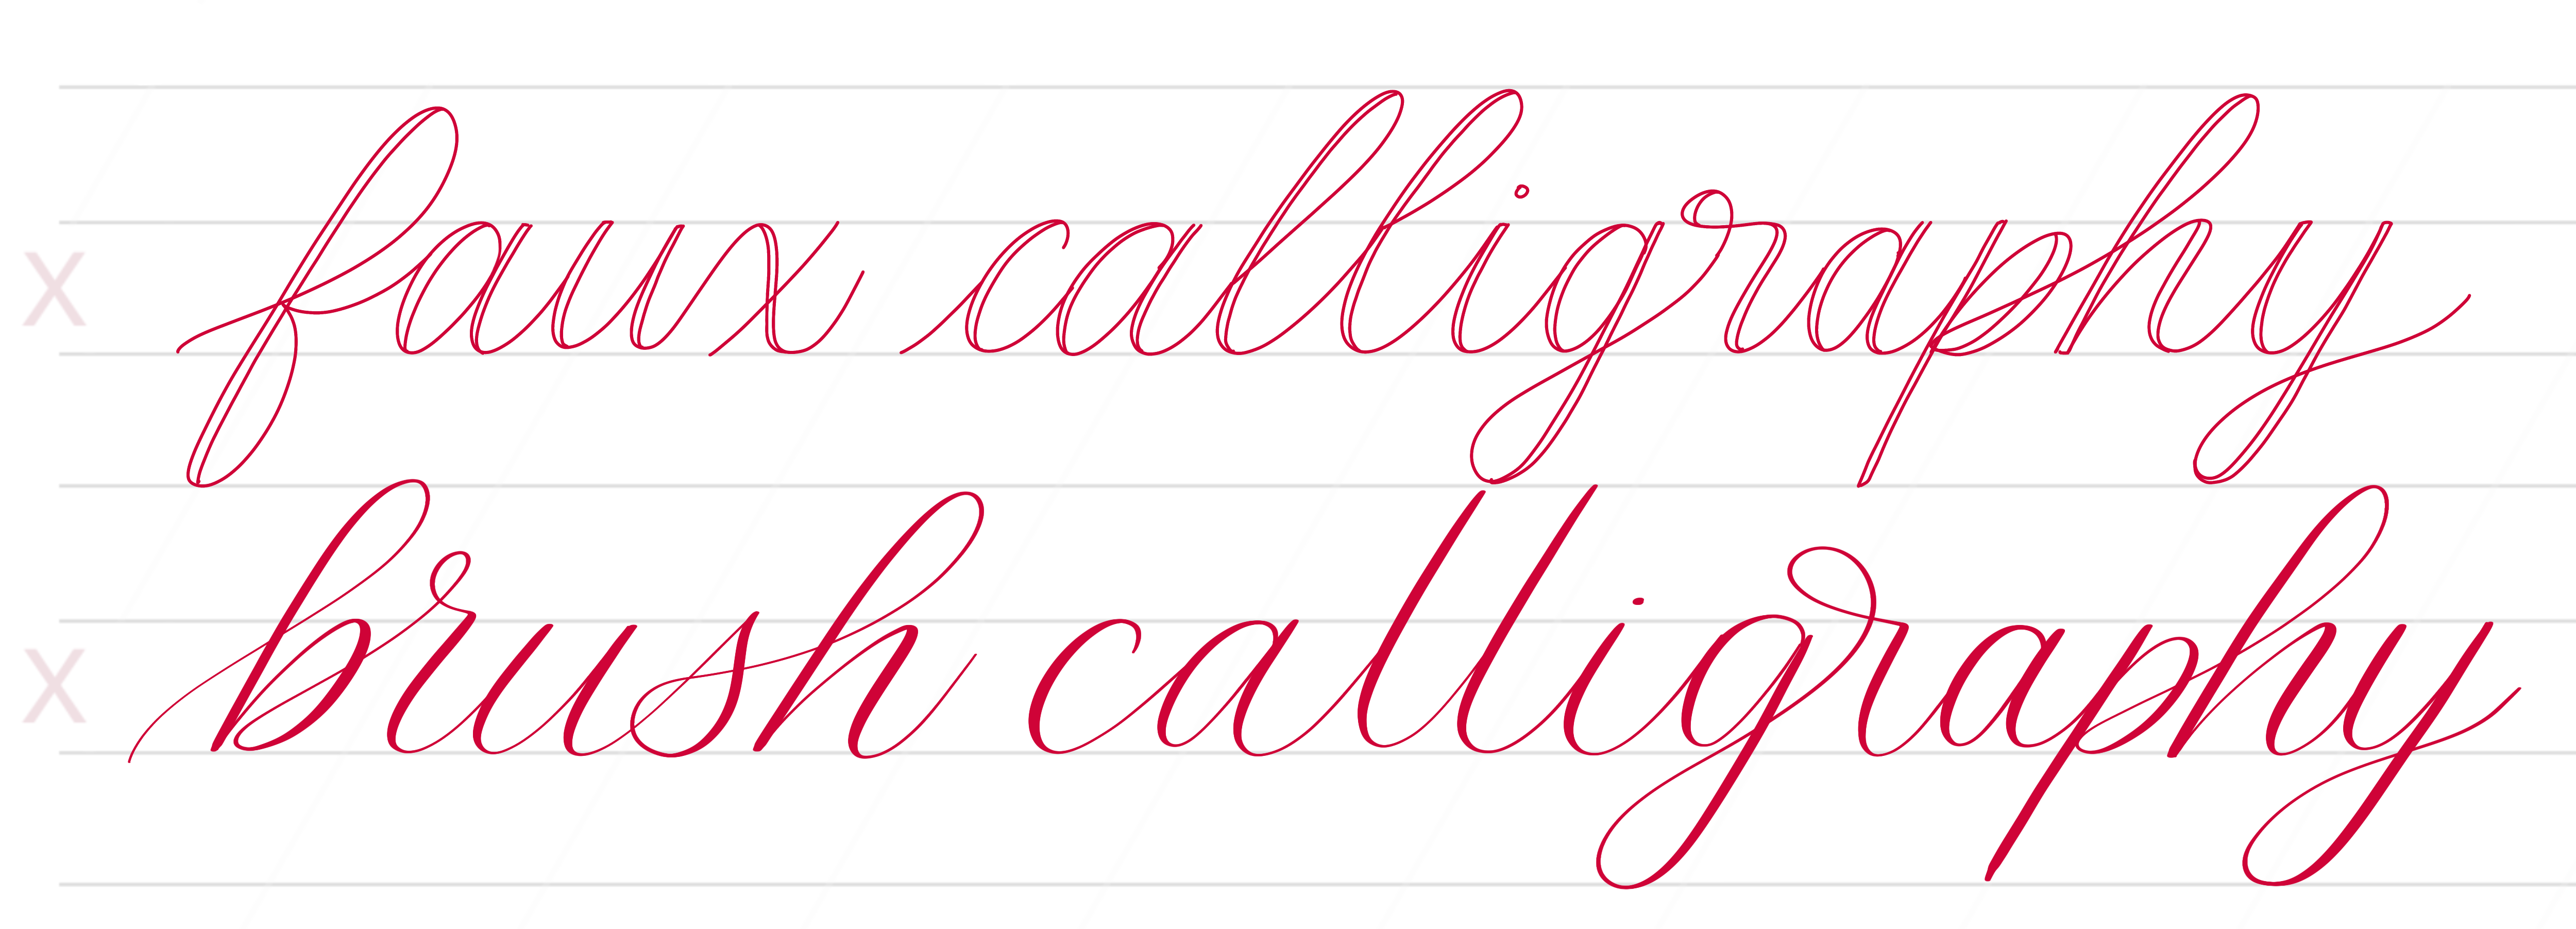 Cherry Pearl Creative - Brush Calligraphy Free Resources - worksheets